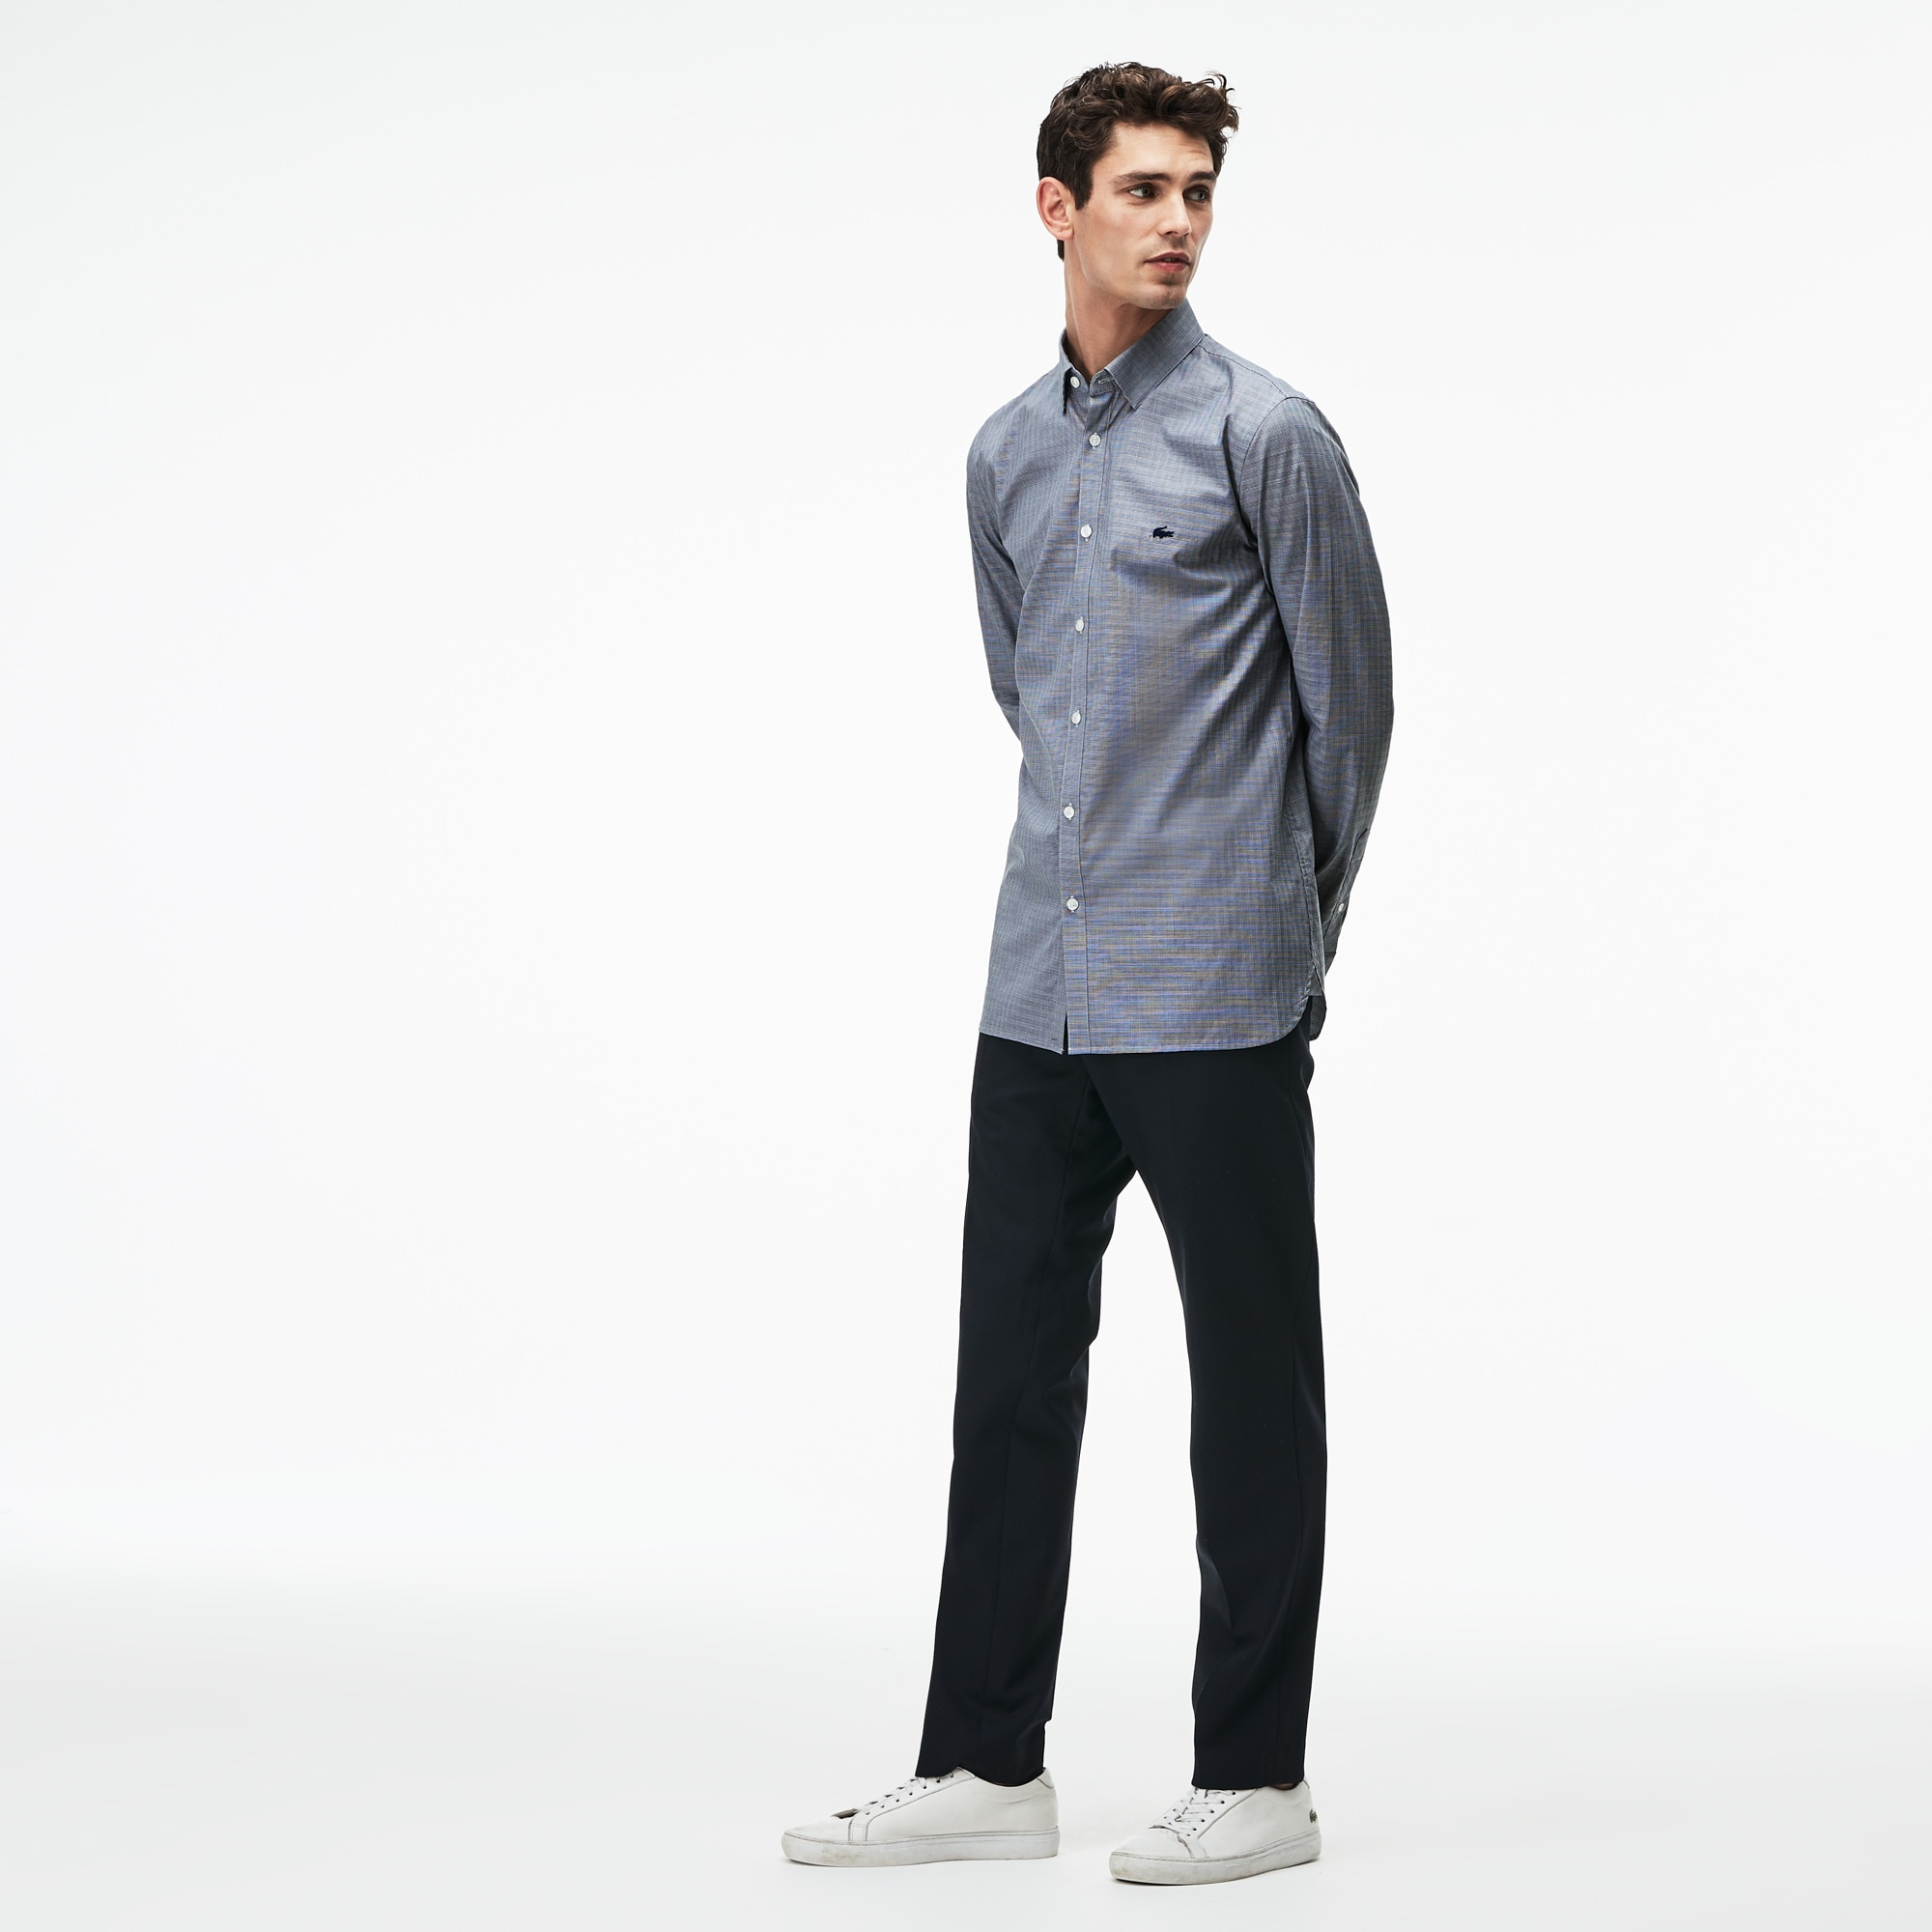 Men's Slim Fit Jacquard Cotton Poplin Shirt